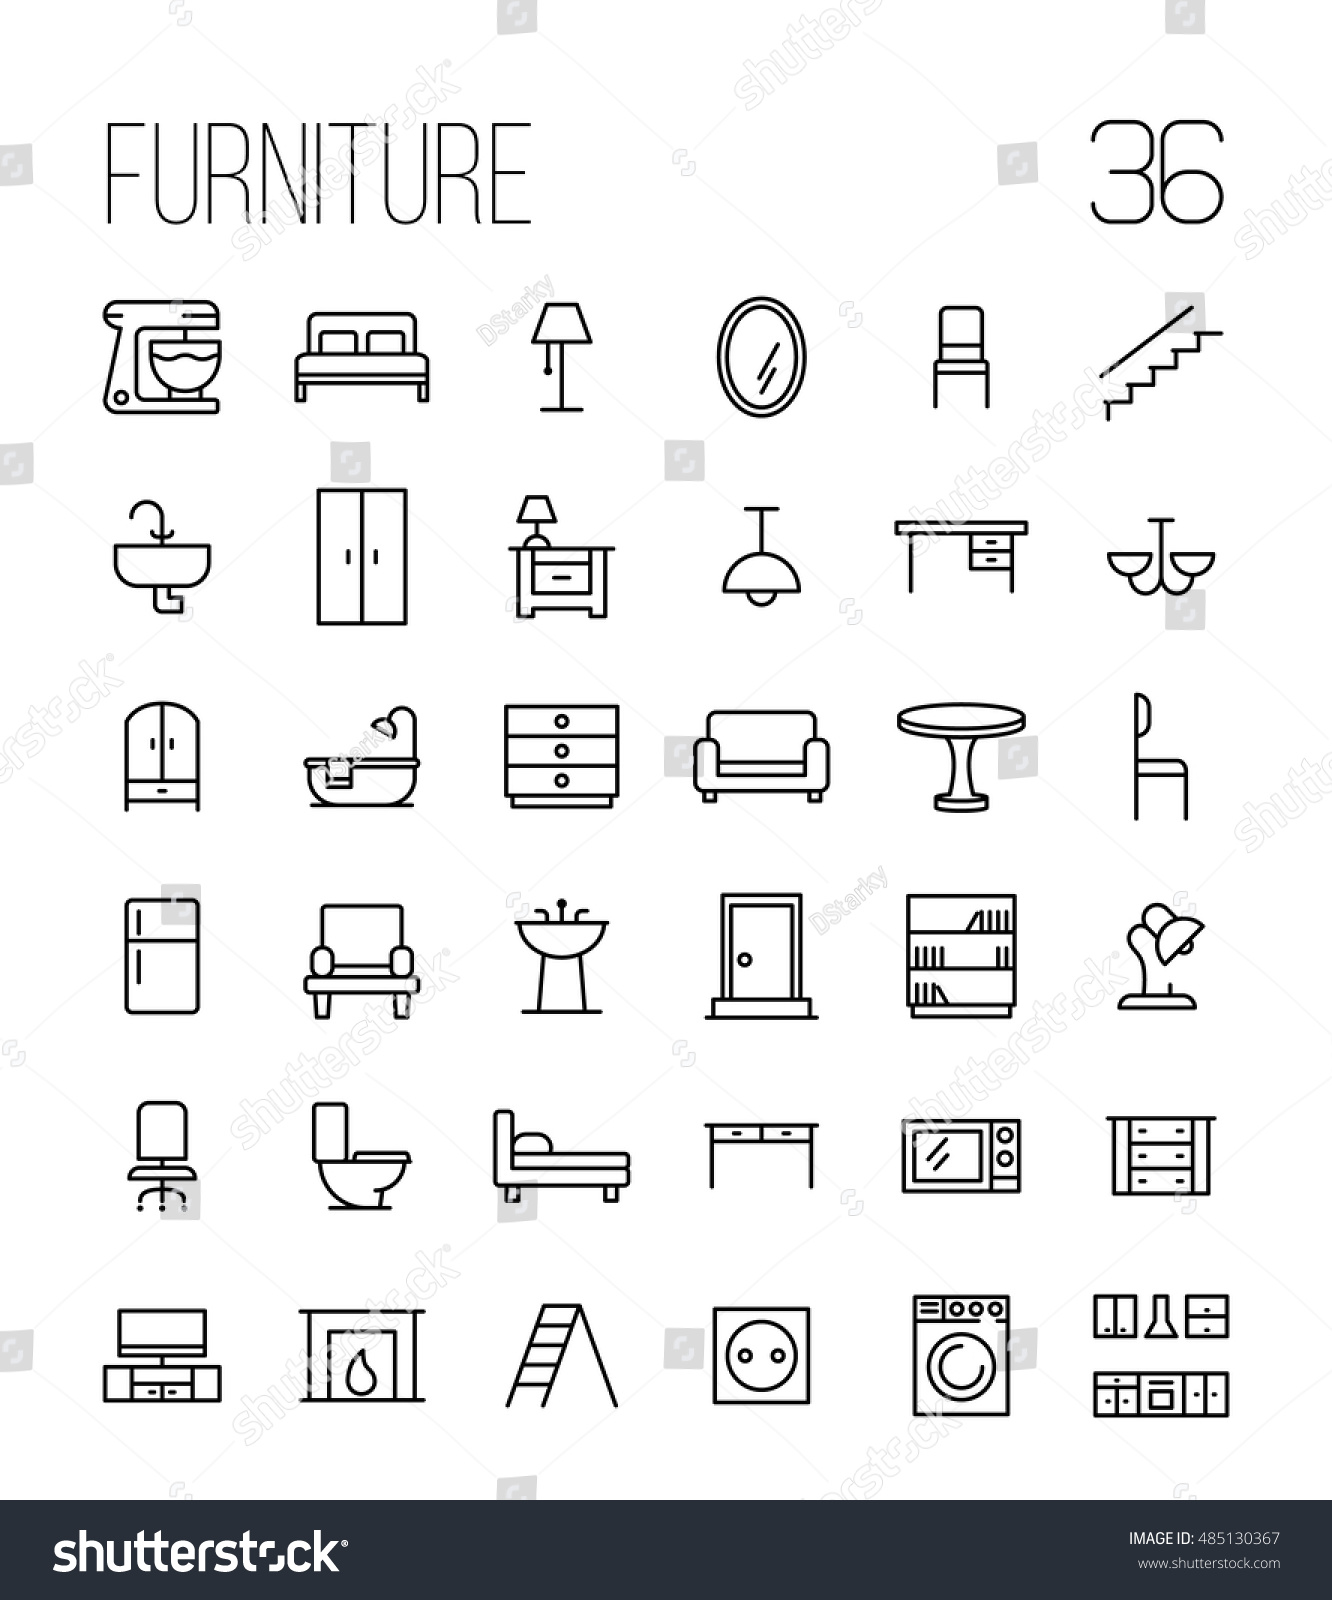 Set furniture icons modern thin line stock vector 485130367 set of furniture icons in modern thin line style high quality black outline home symbols buycottarizona Image collections